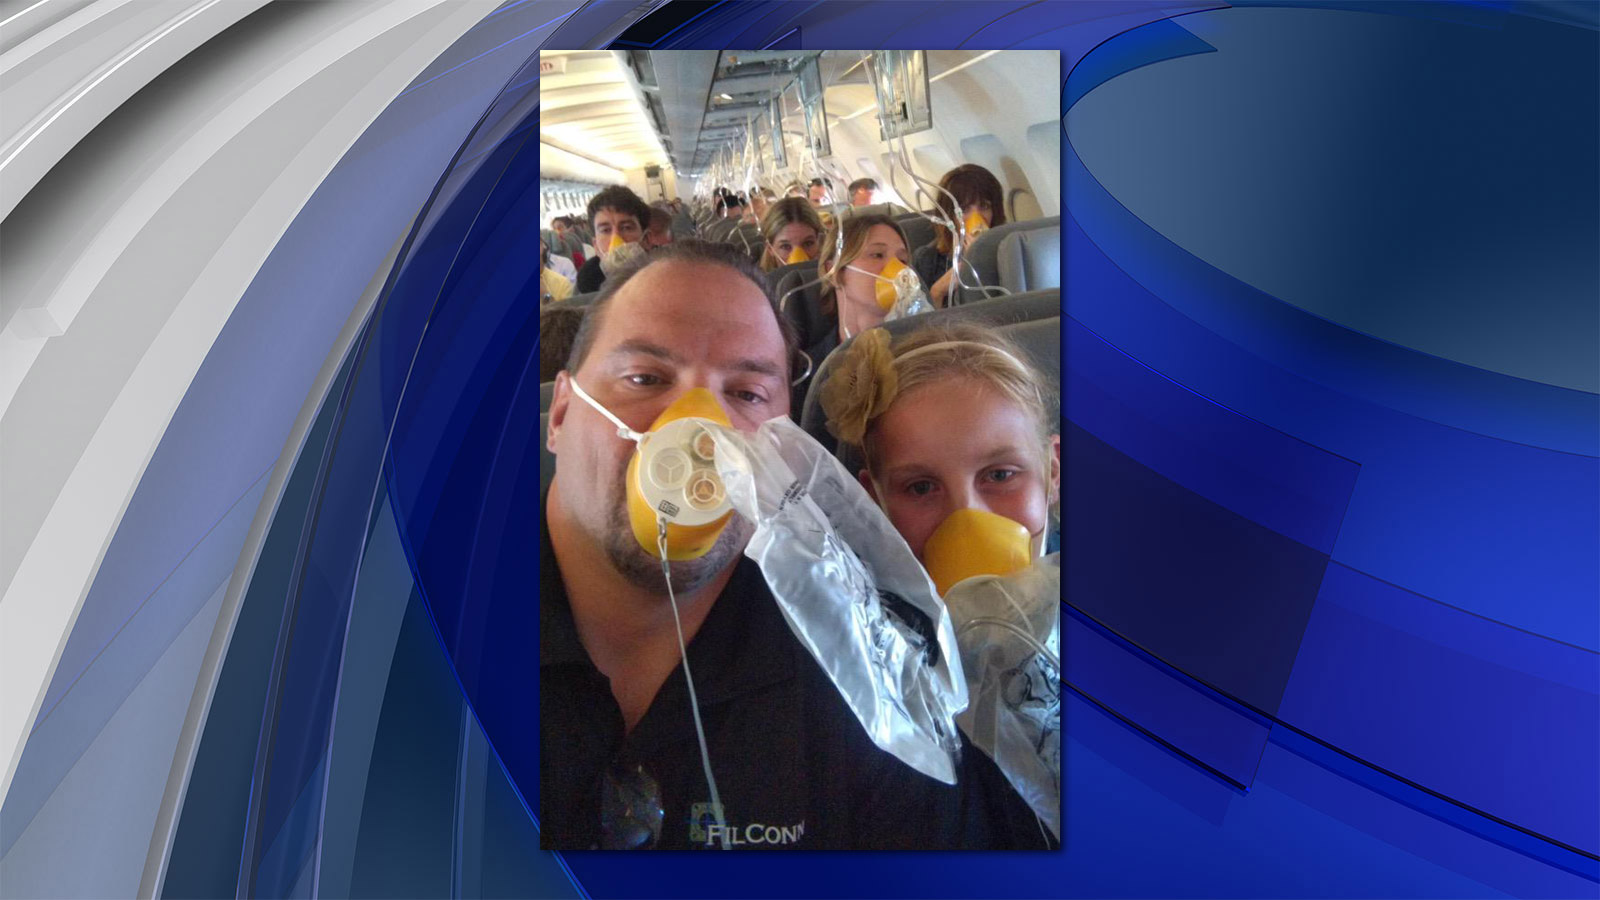 Jason and Victoria Pedruzzi on board the United Airlines flight that made an emergency landing (credit: Jason Pedruzzi)